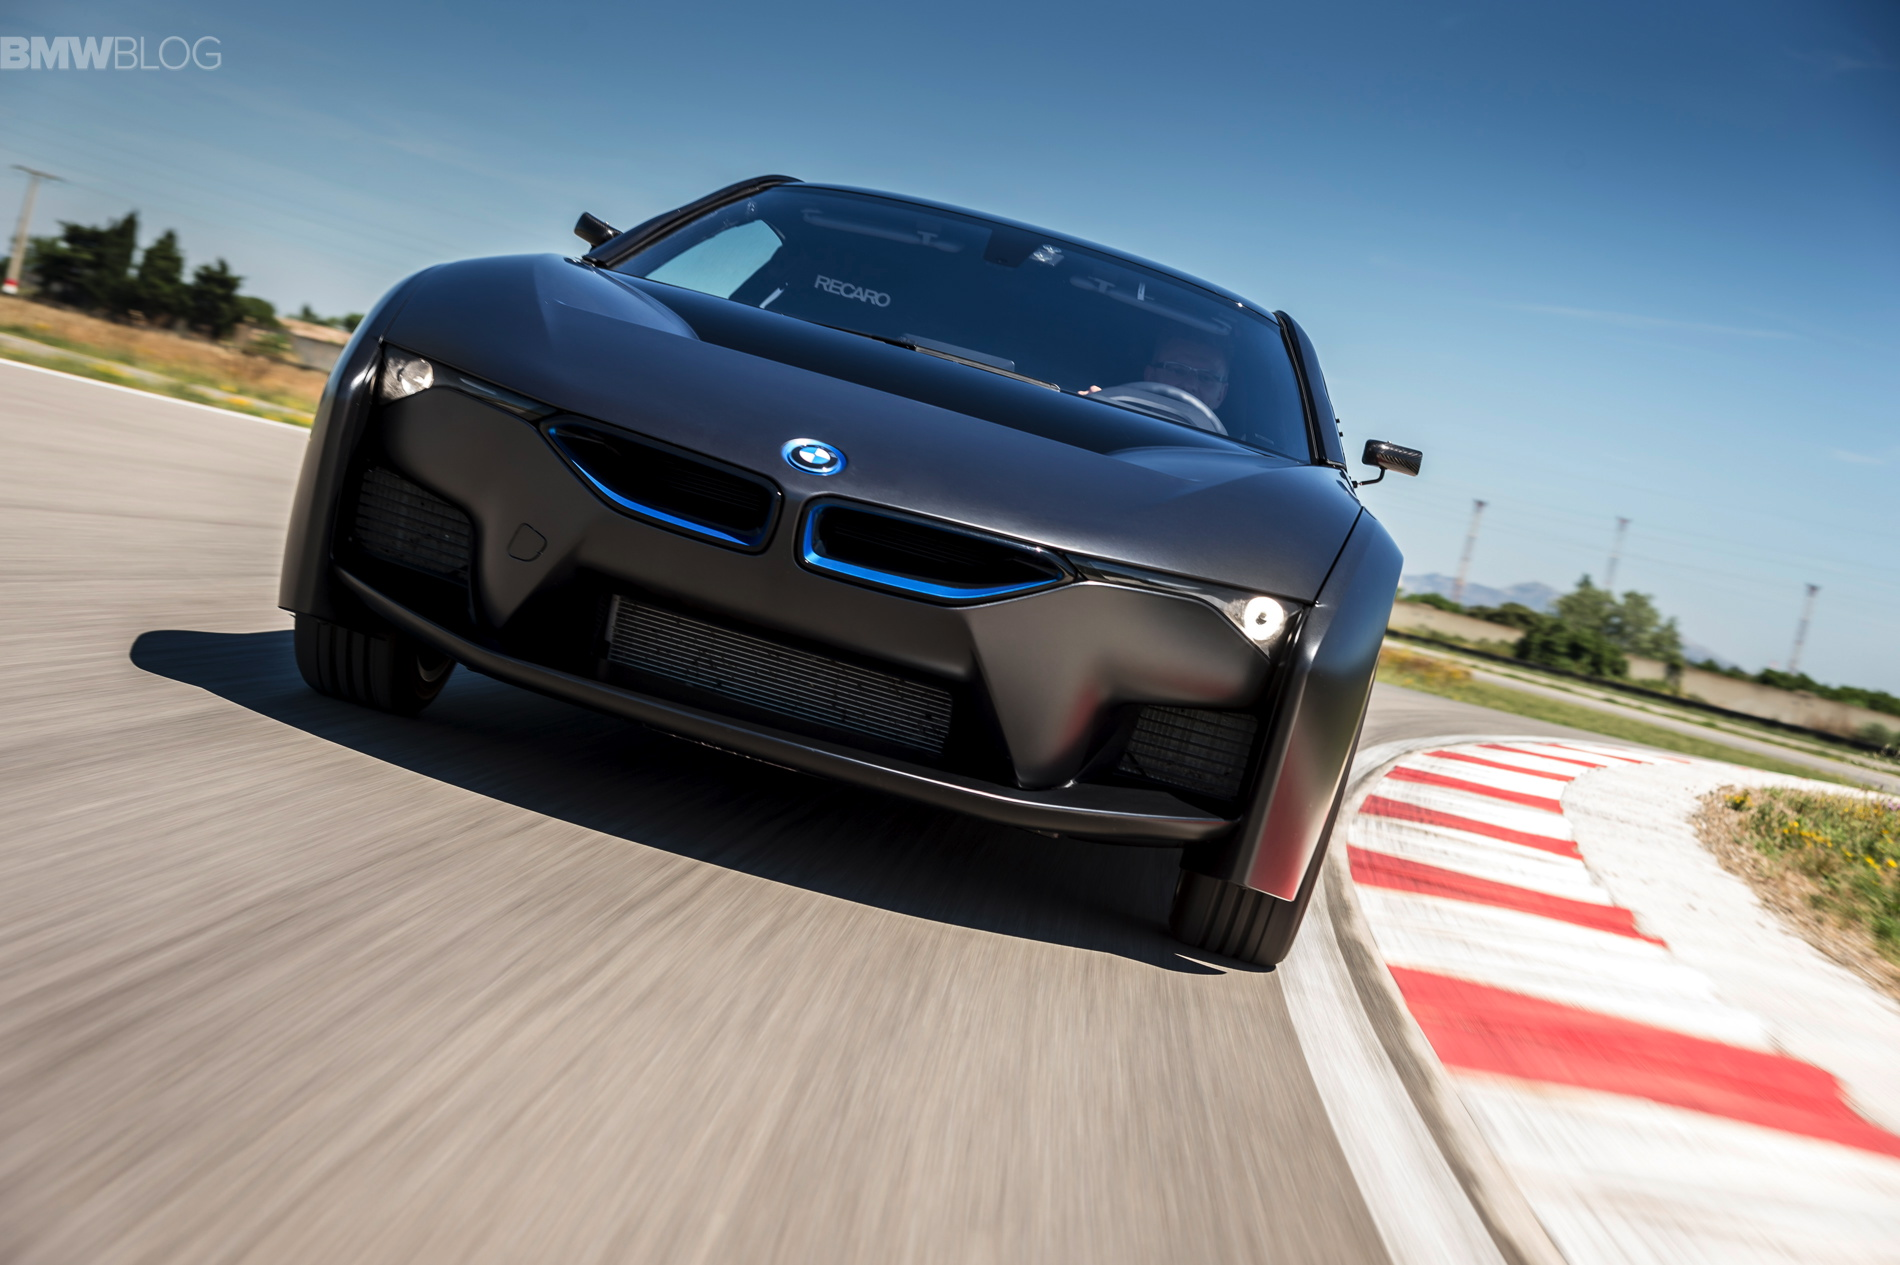 BMW i8 hydrogen fuel cell images 05